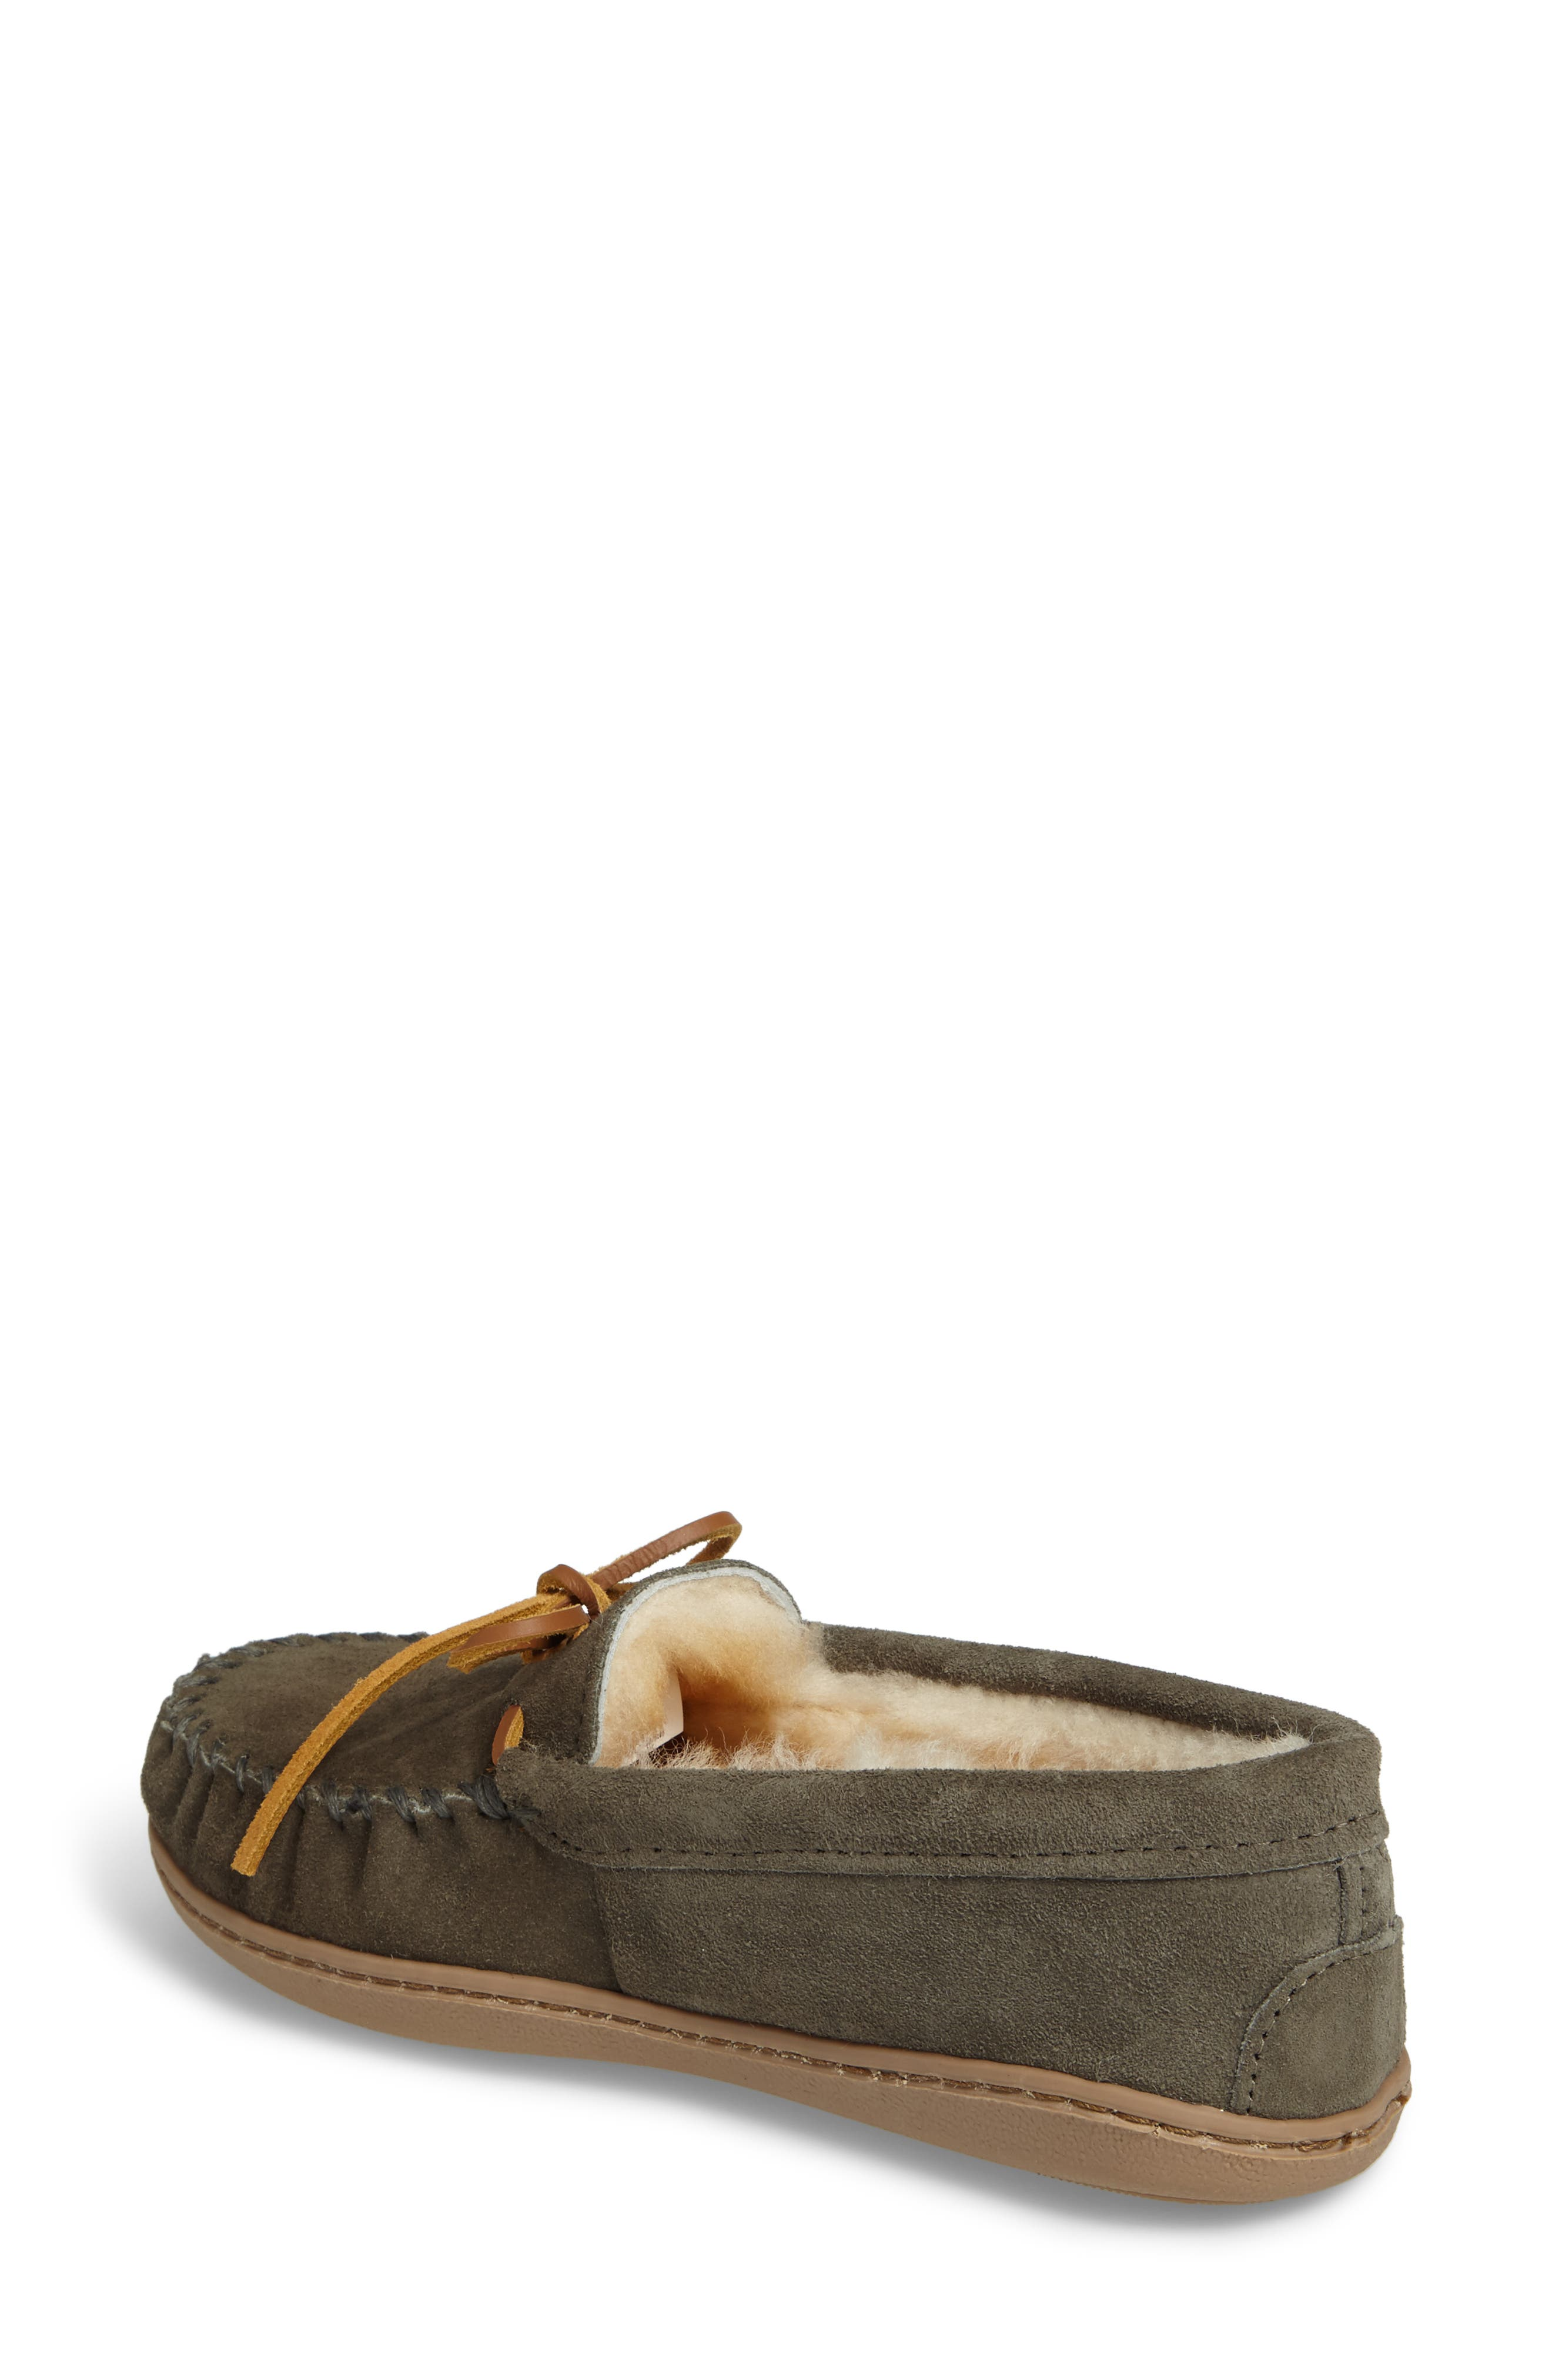 Genuine Shearling Hard Sole Moccasin Indoor/Outdoor Slipper,                             Alternate thumbnail 2, color,                             Grey